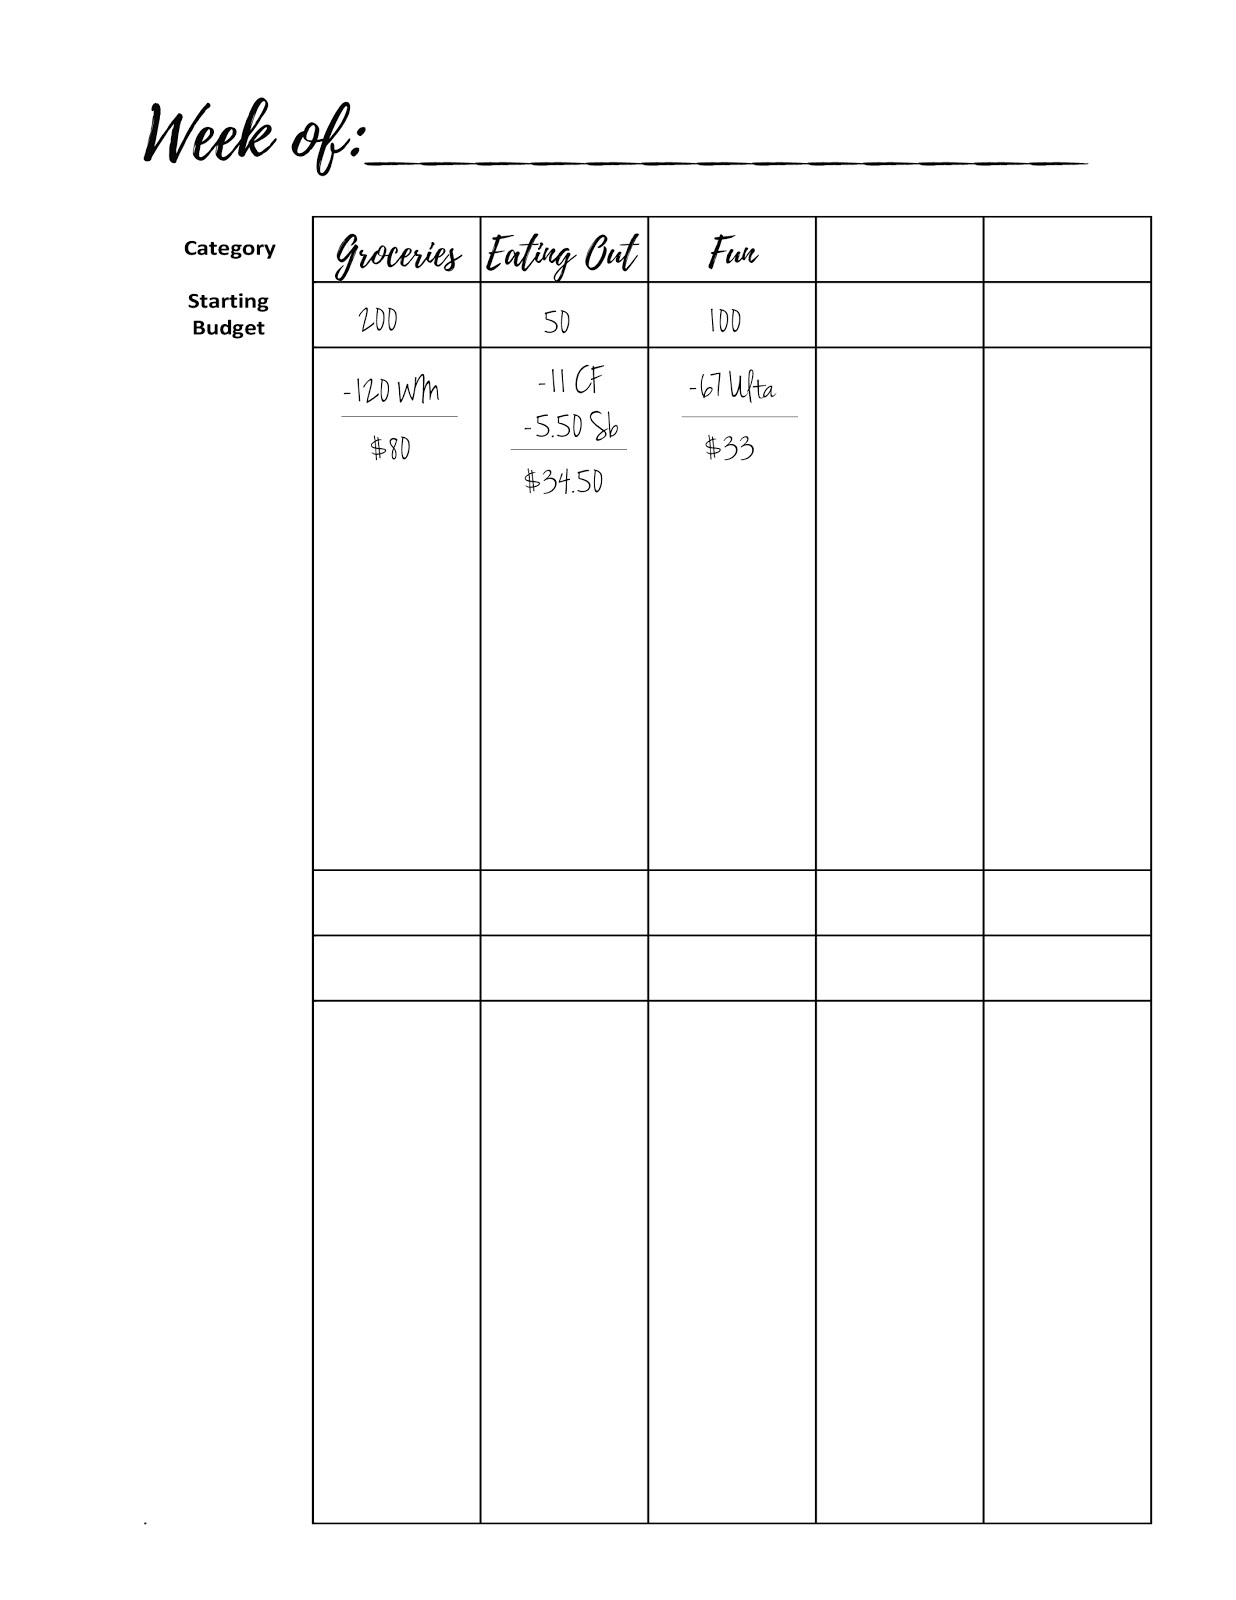 malena haas freebie friday weekly budget tracker printable